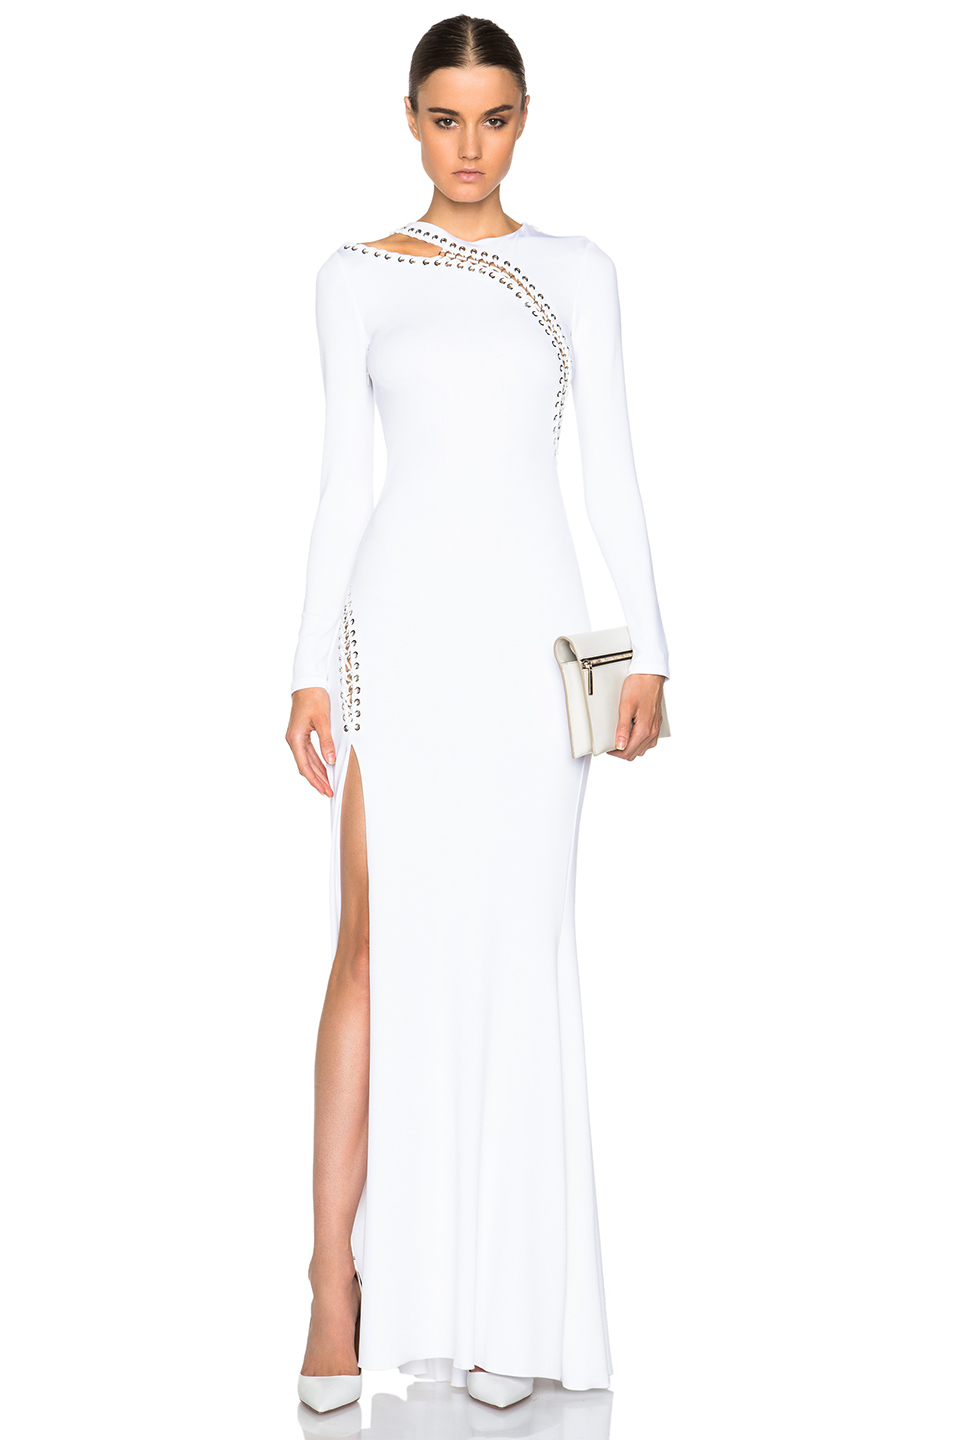 Lyst - Emilio Pucci Long Sleeve Gown With Slit in White